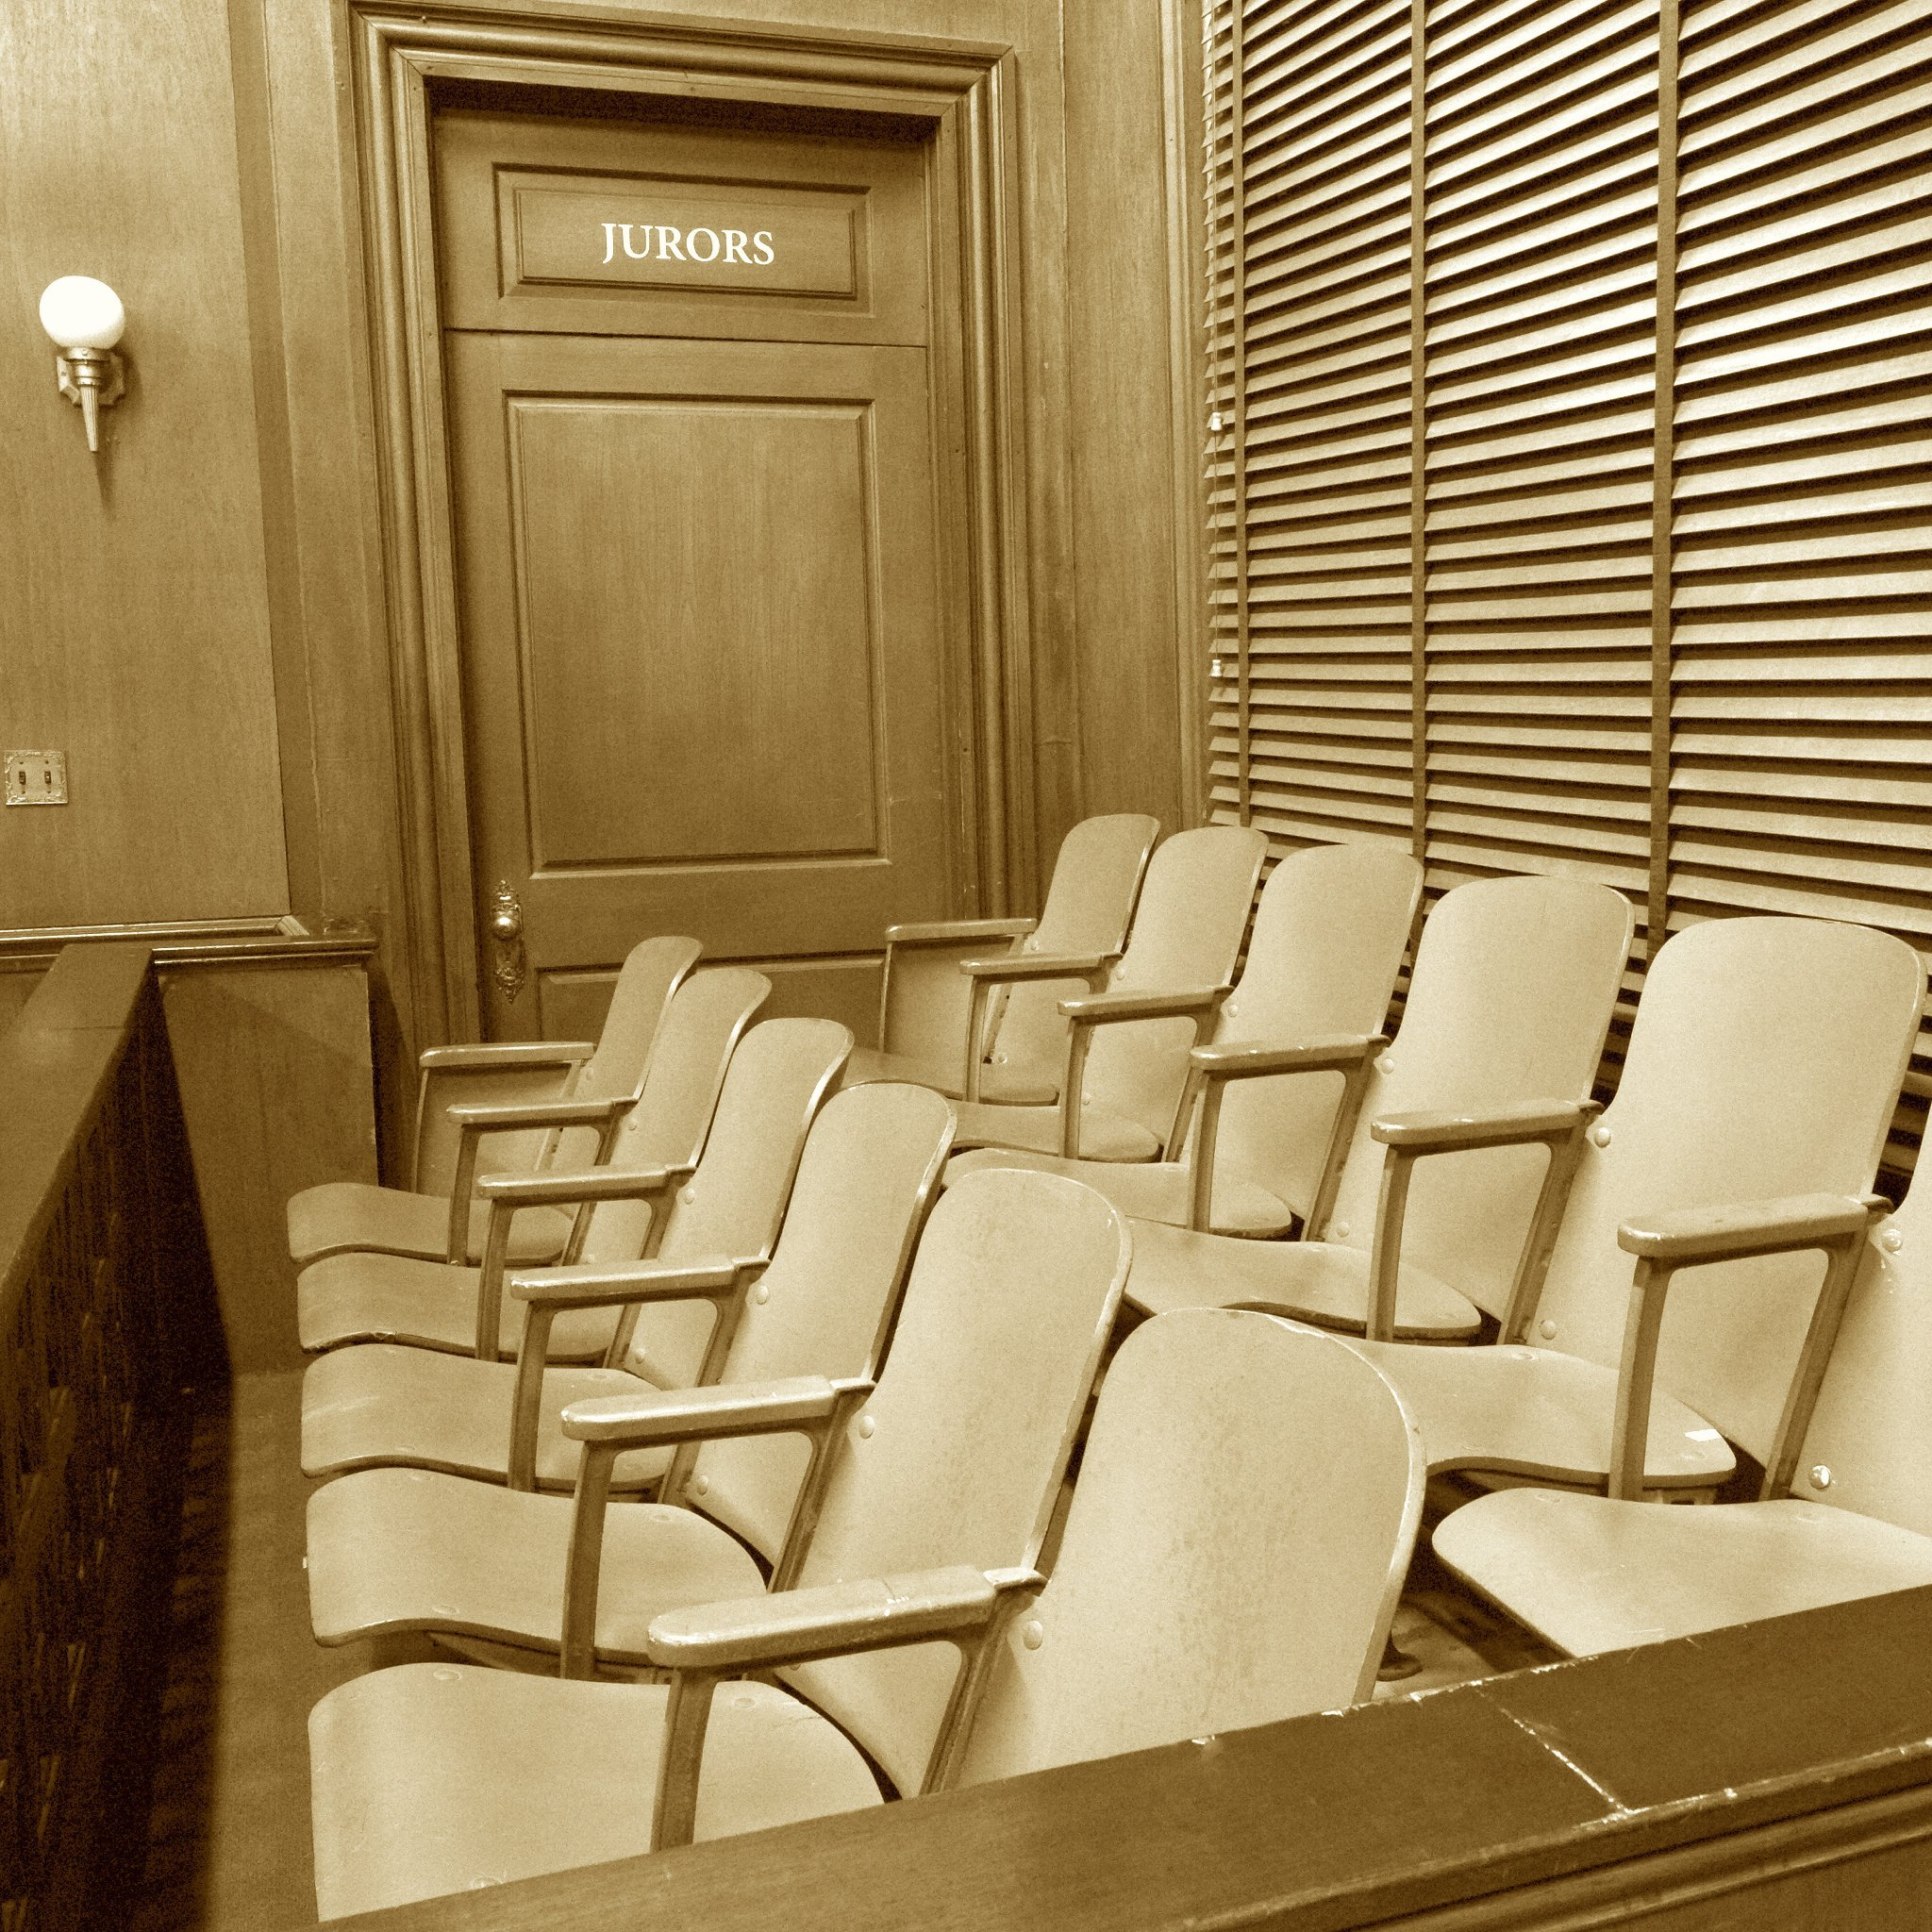 Listen: Murderer or 'Reasonable Officer?' Jury Deliberates in Chauvin Trial